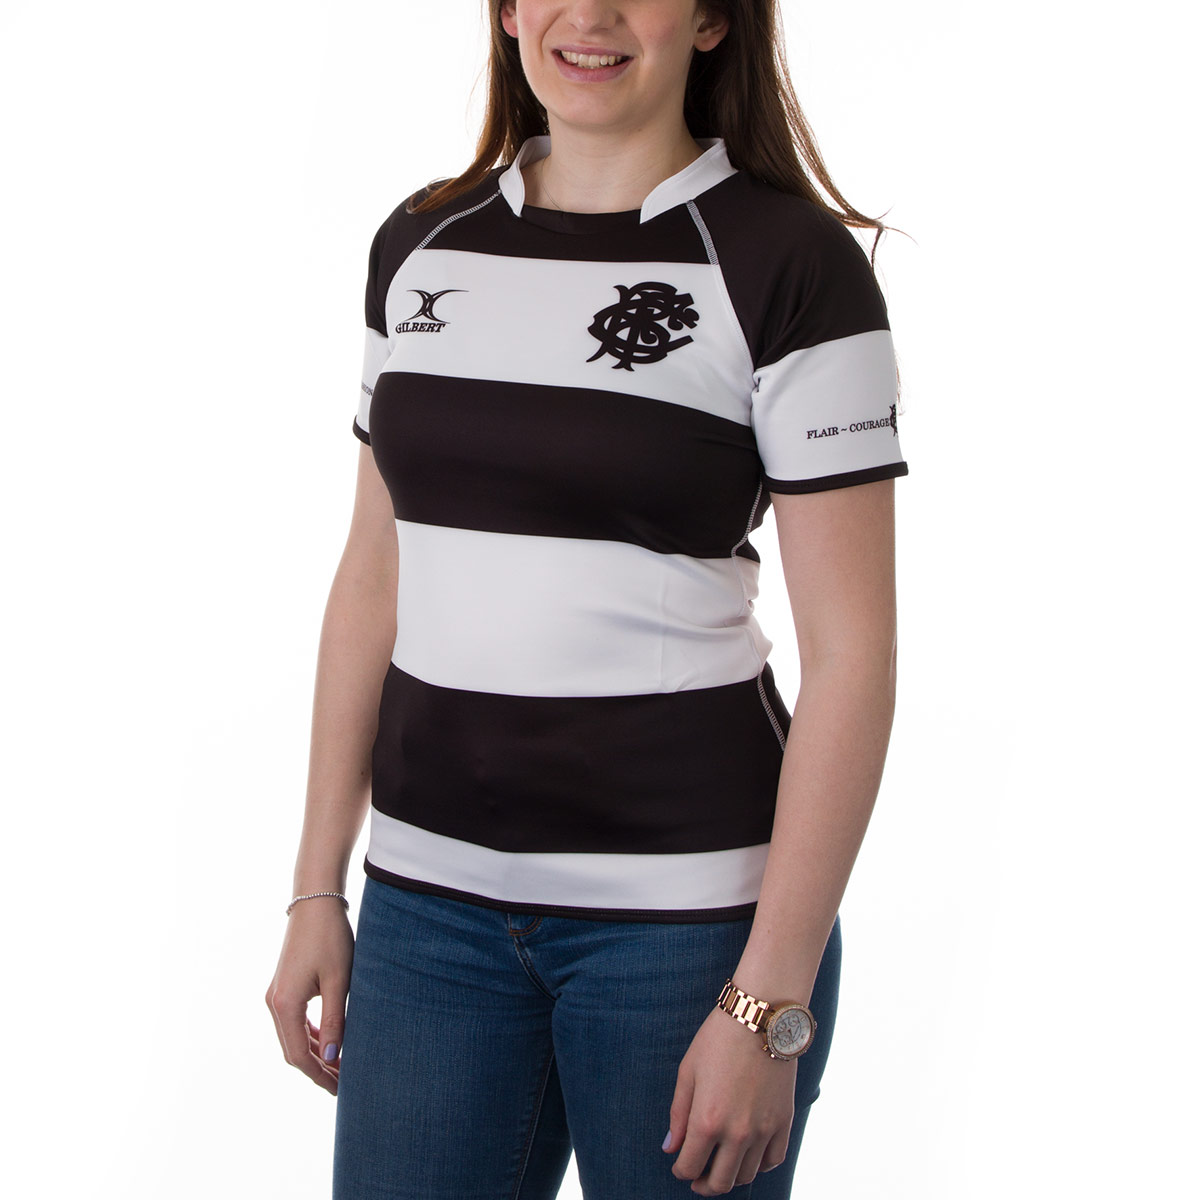 908e8194283 Womens Barbarians Players Edition Rugby Shirt (Short Sleeved ...